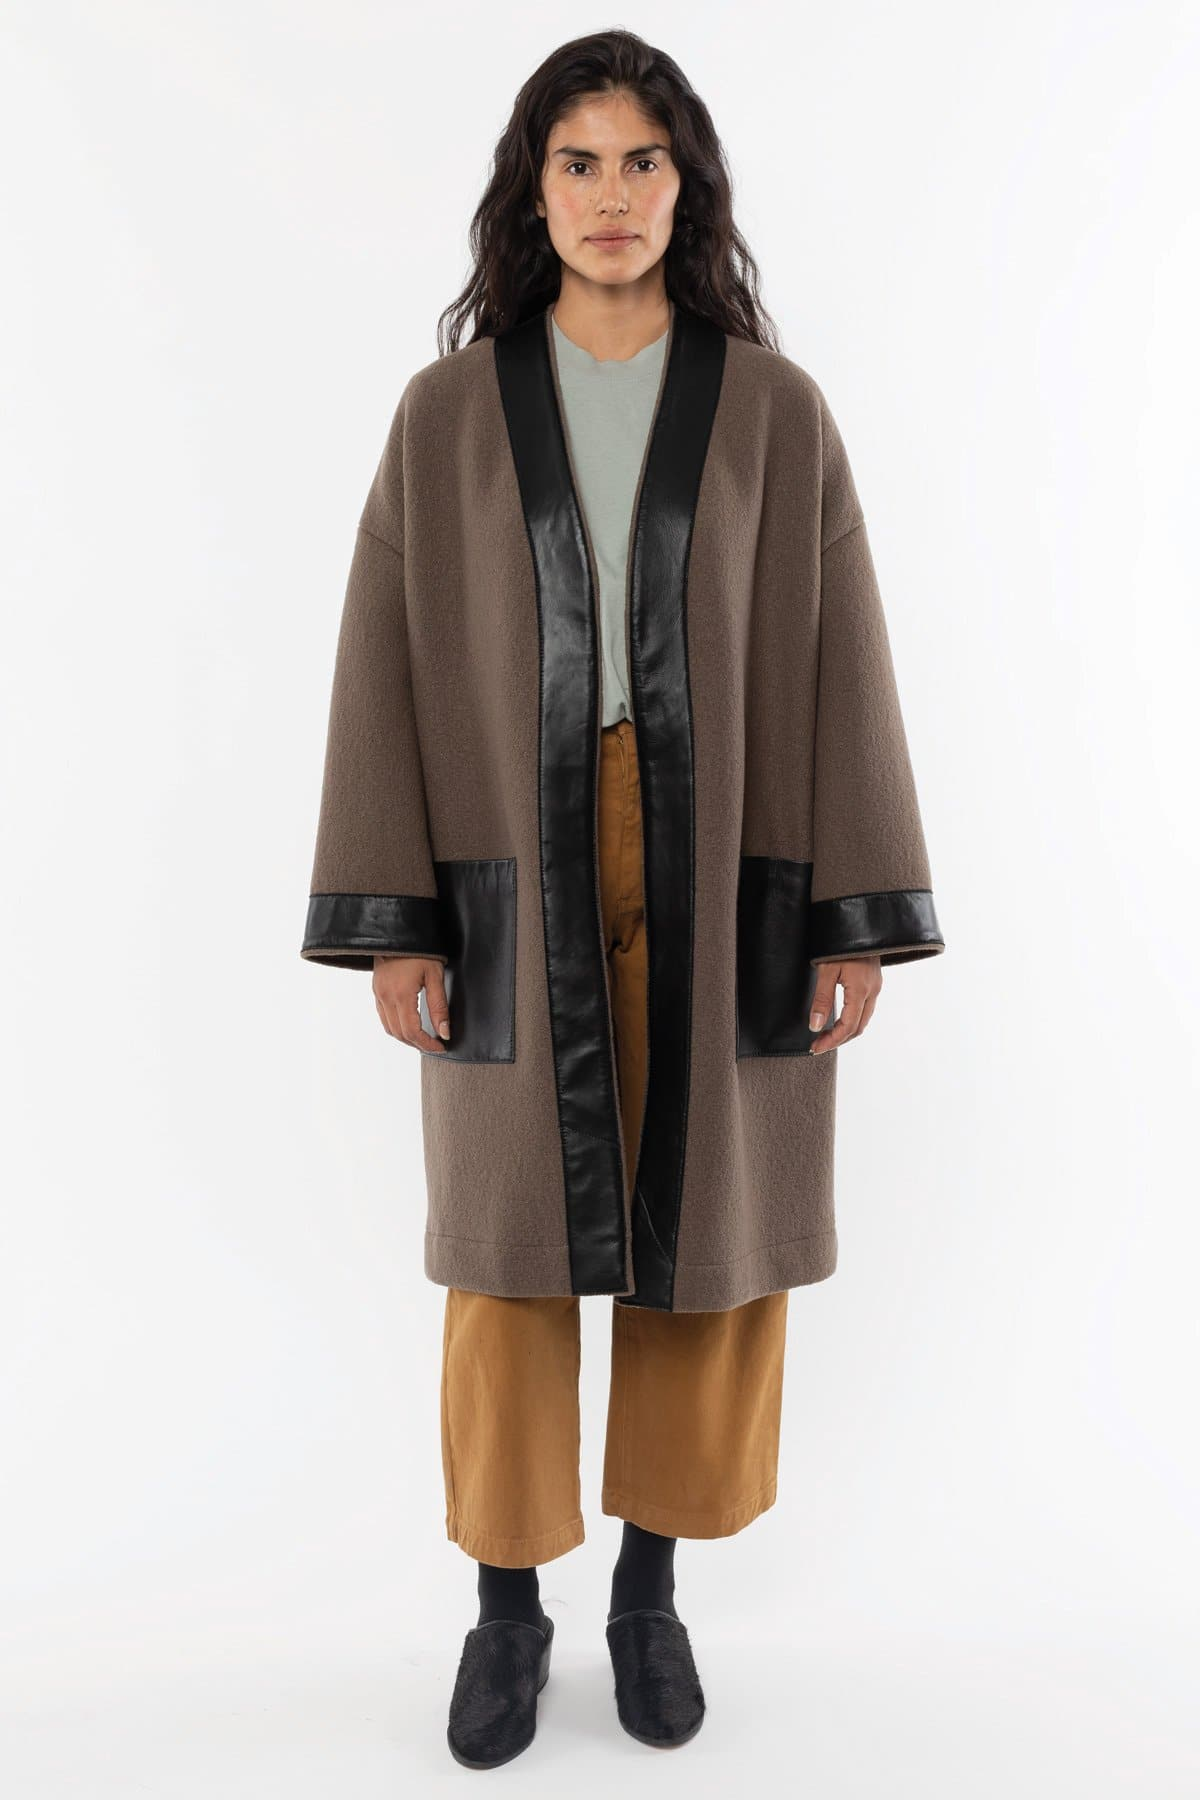 RWL100 - Wool Coat with Leather Trim